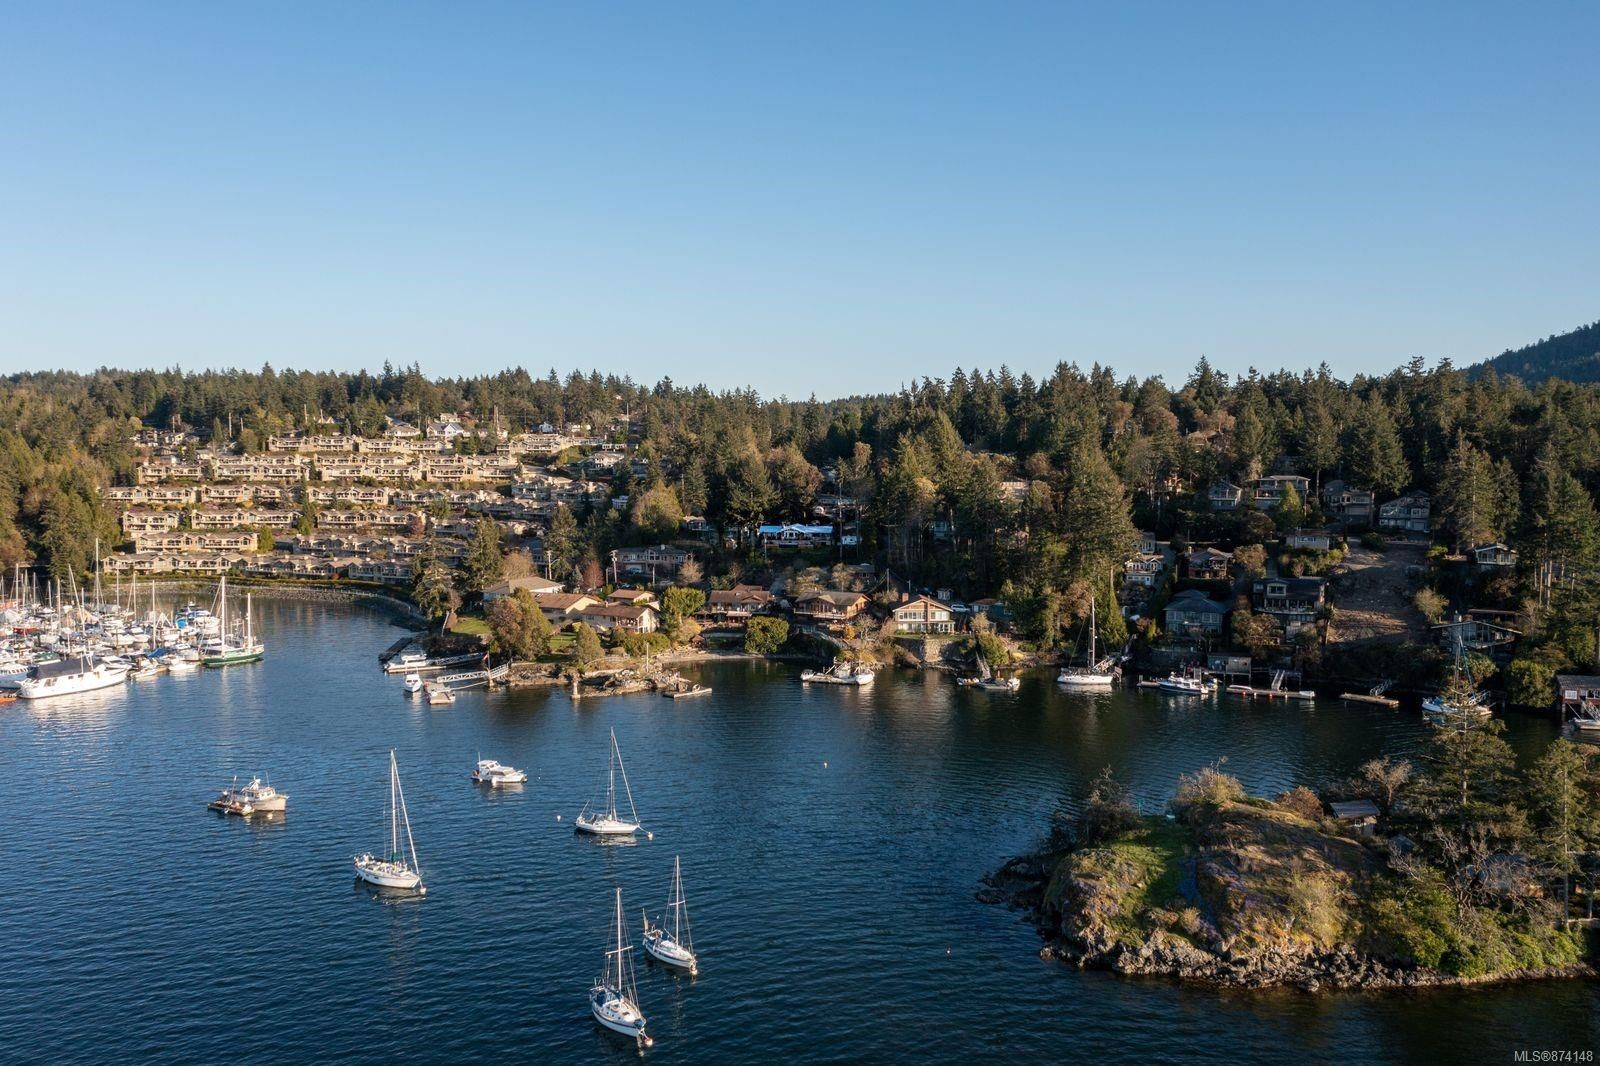 Main Photo: 800 Sea Dr in : CS Brentwood Bay House for sale (Central Saanich)  : MLS®# 874148